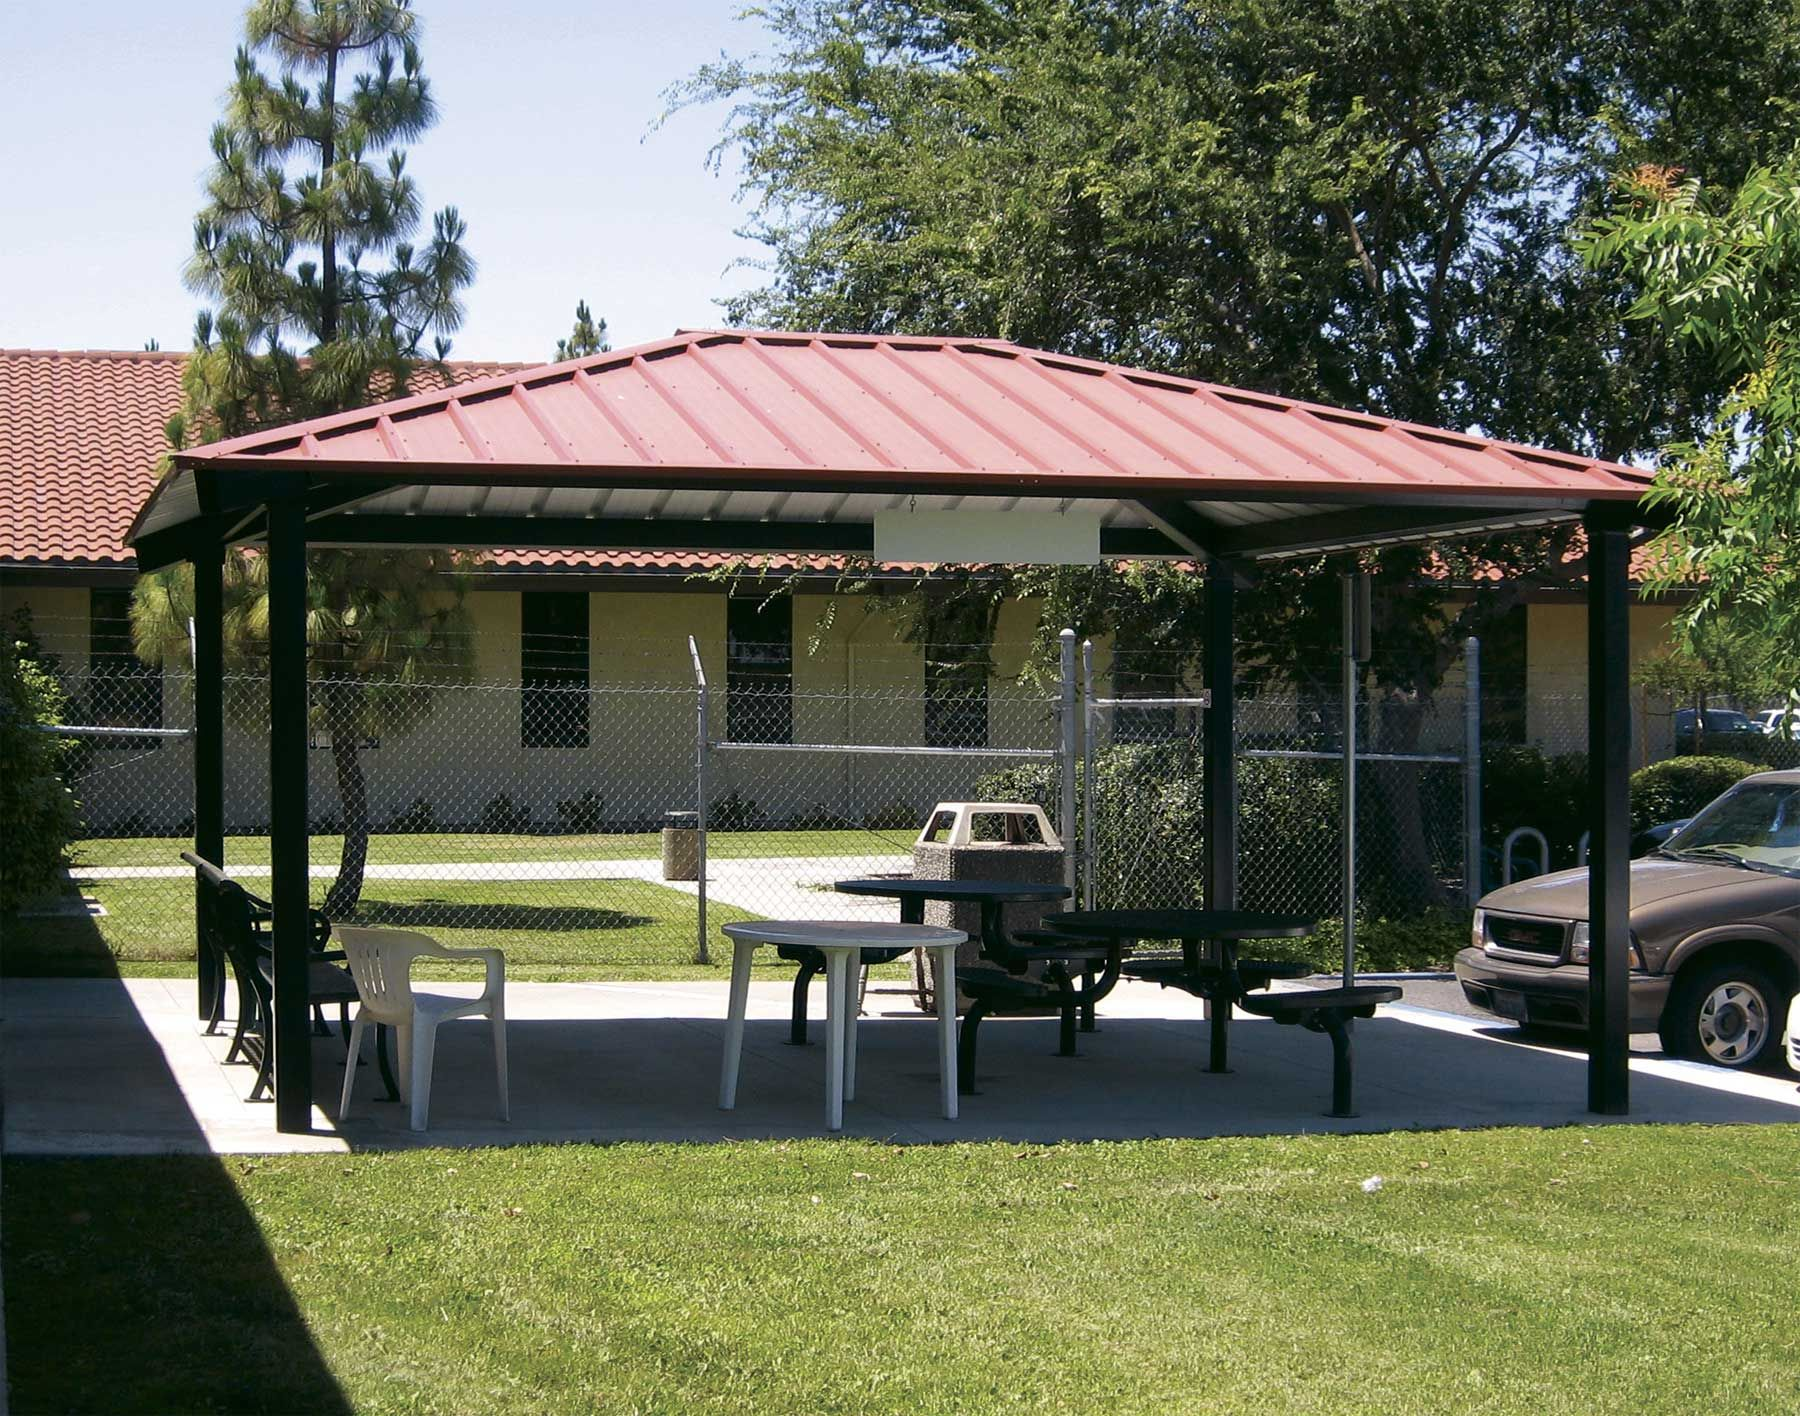 Metal Gazebo Roof Plans   The Gazebo Is A Pavilion Construction That Is Put  To Use For Several Years As A Public Space That Is Ample, For Groups To  Play Or